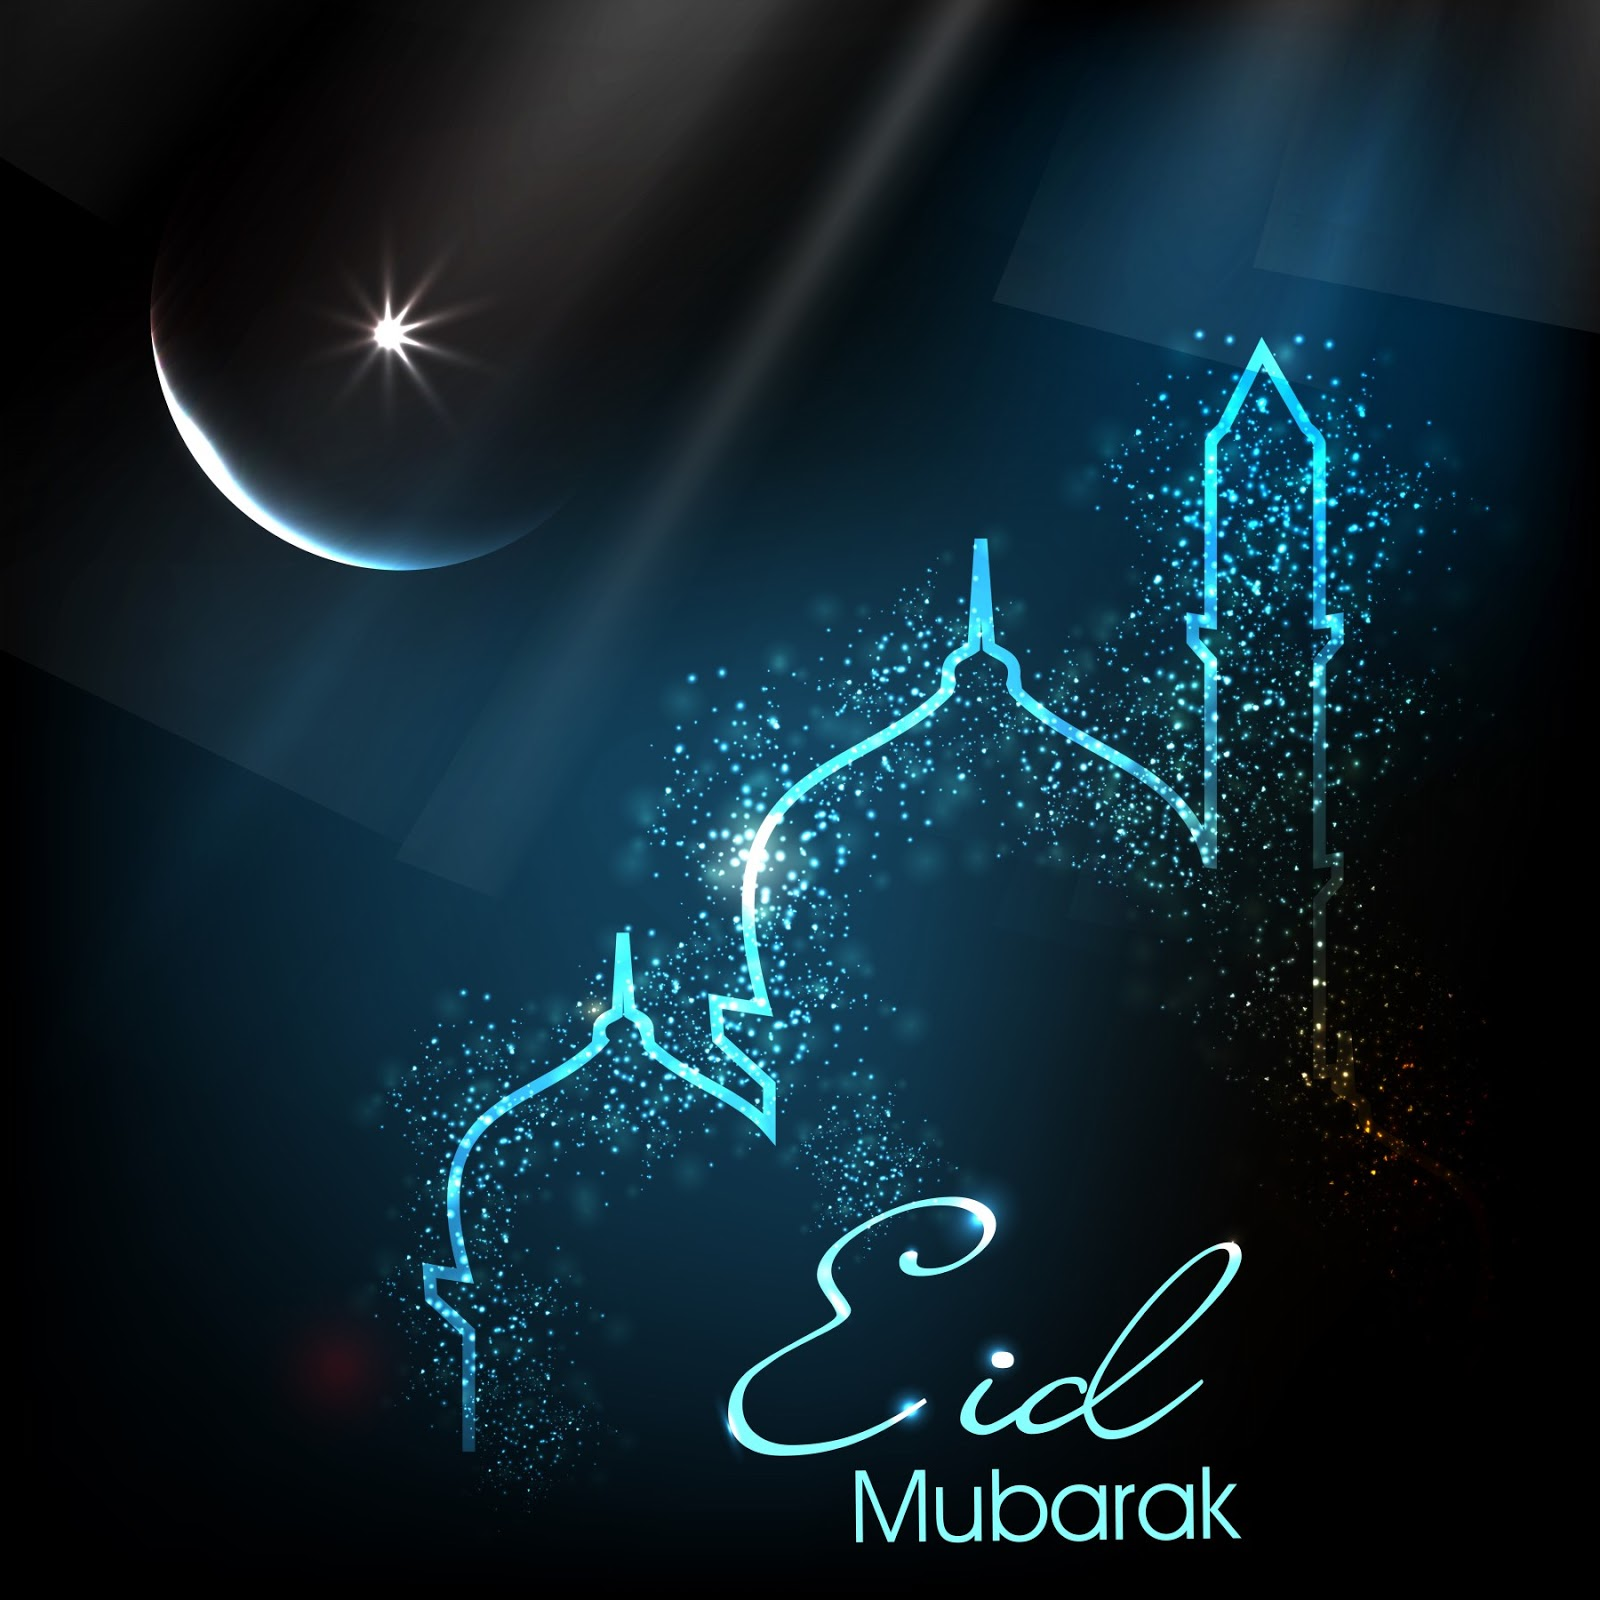 Eid-mubarak-2016-ramadan-2016-hd-moon-wallpaper-image.jpg